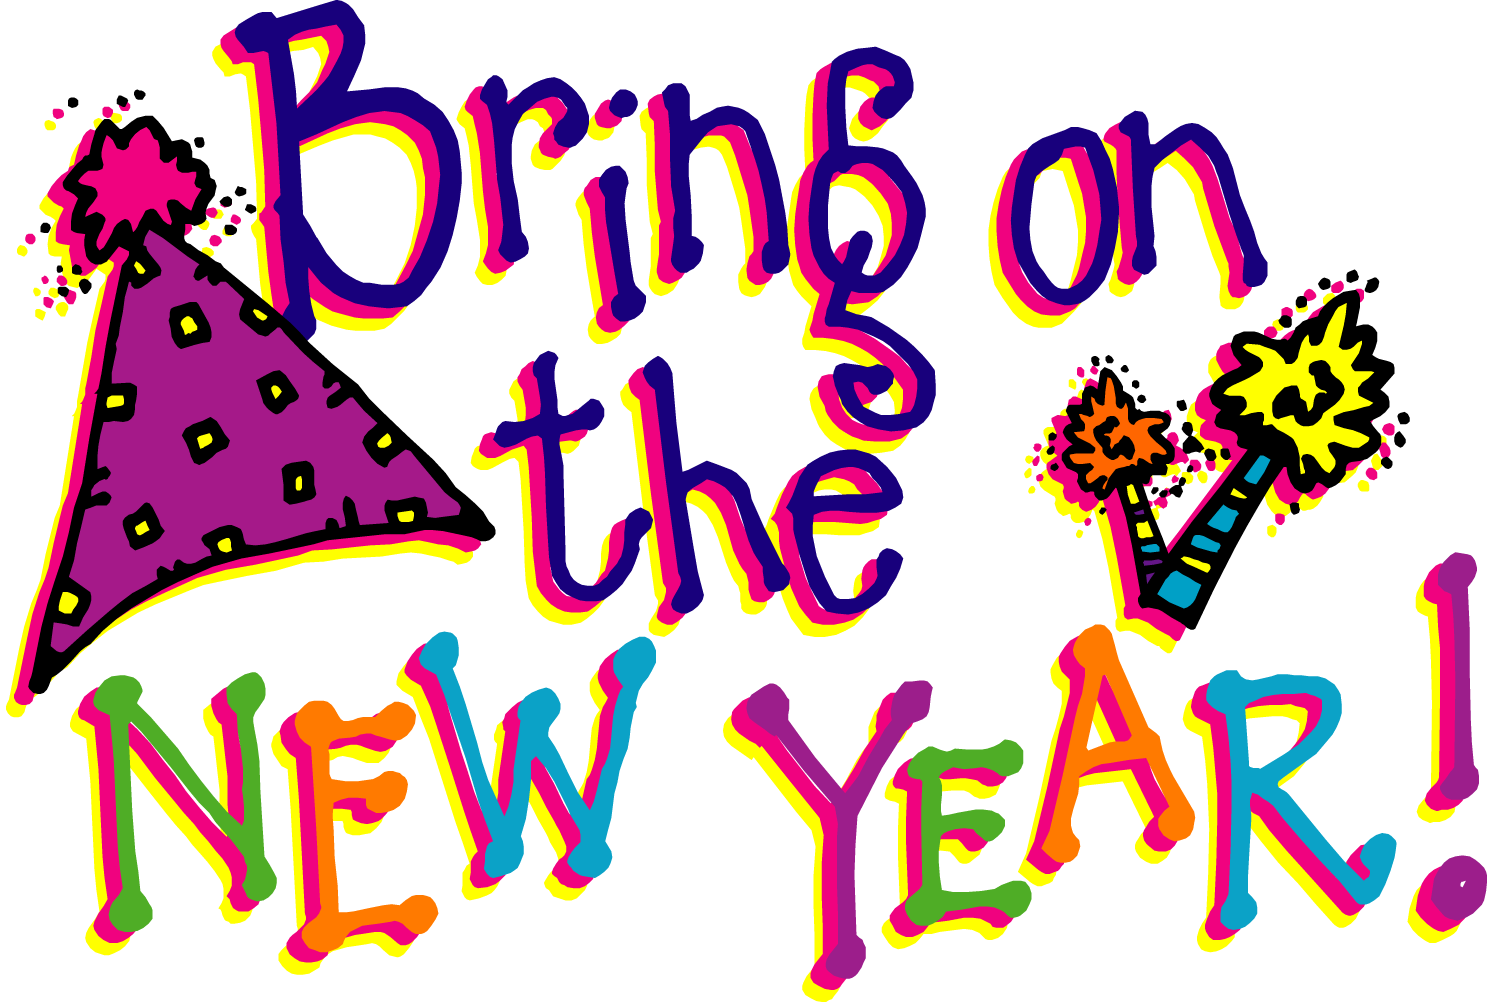 new years eve new year clip art